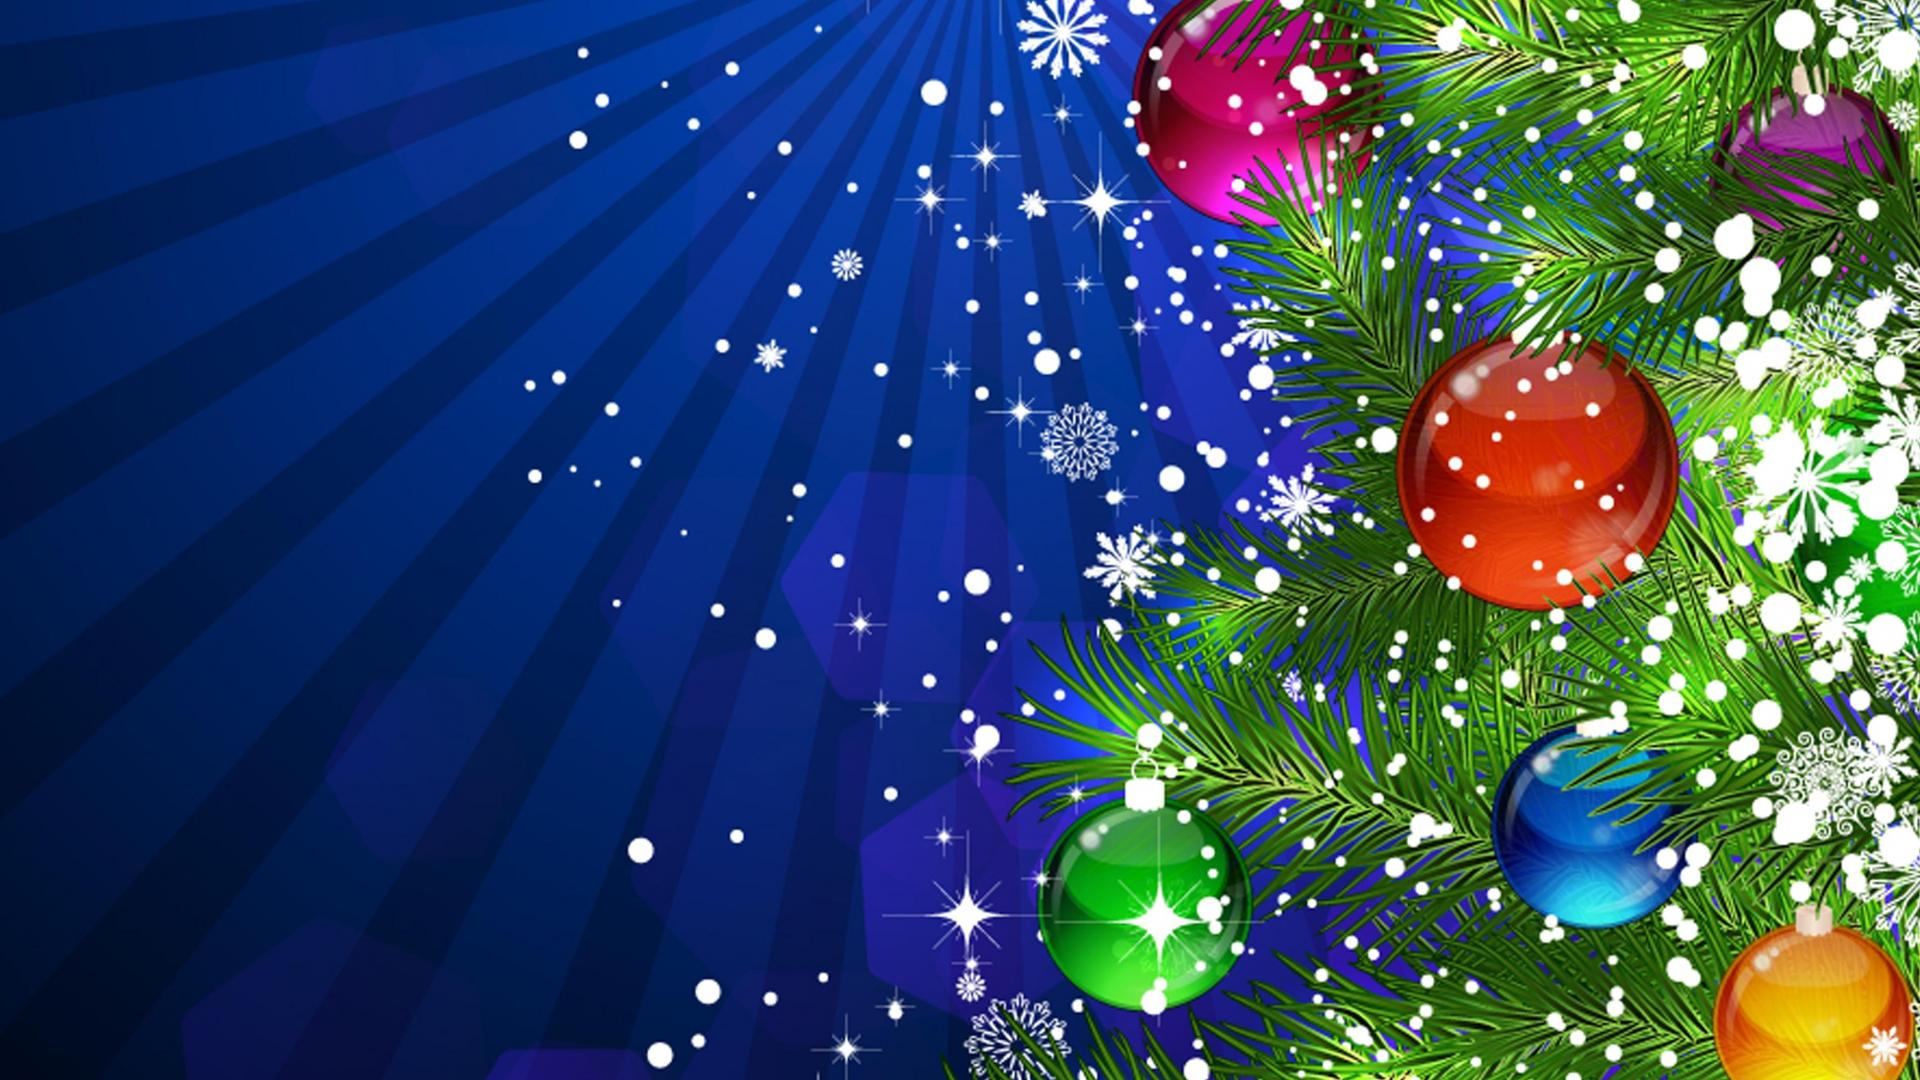 Christmas Background Wallpaper Free Download | New HD Wallpapers